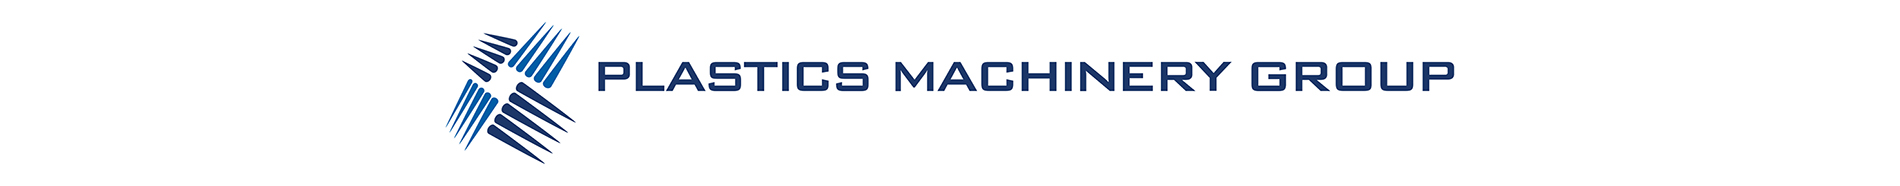 Plastics Machinery Group